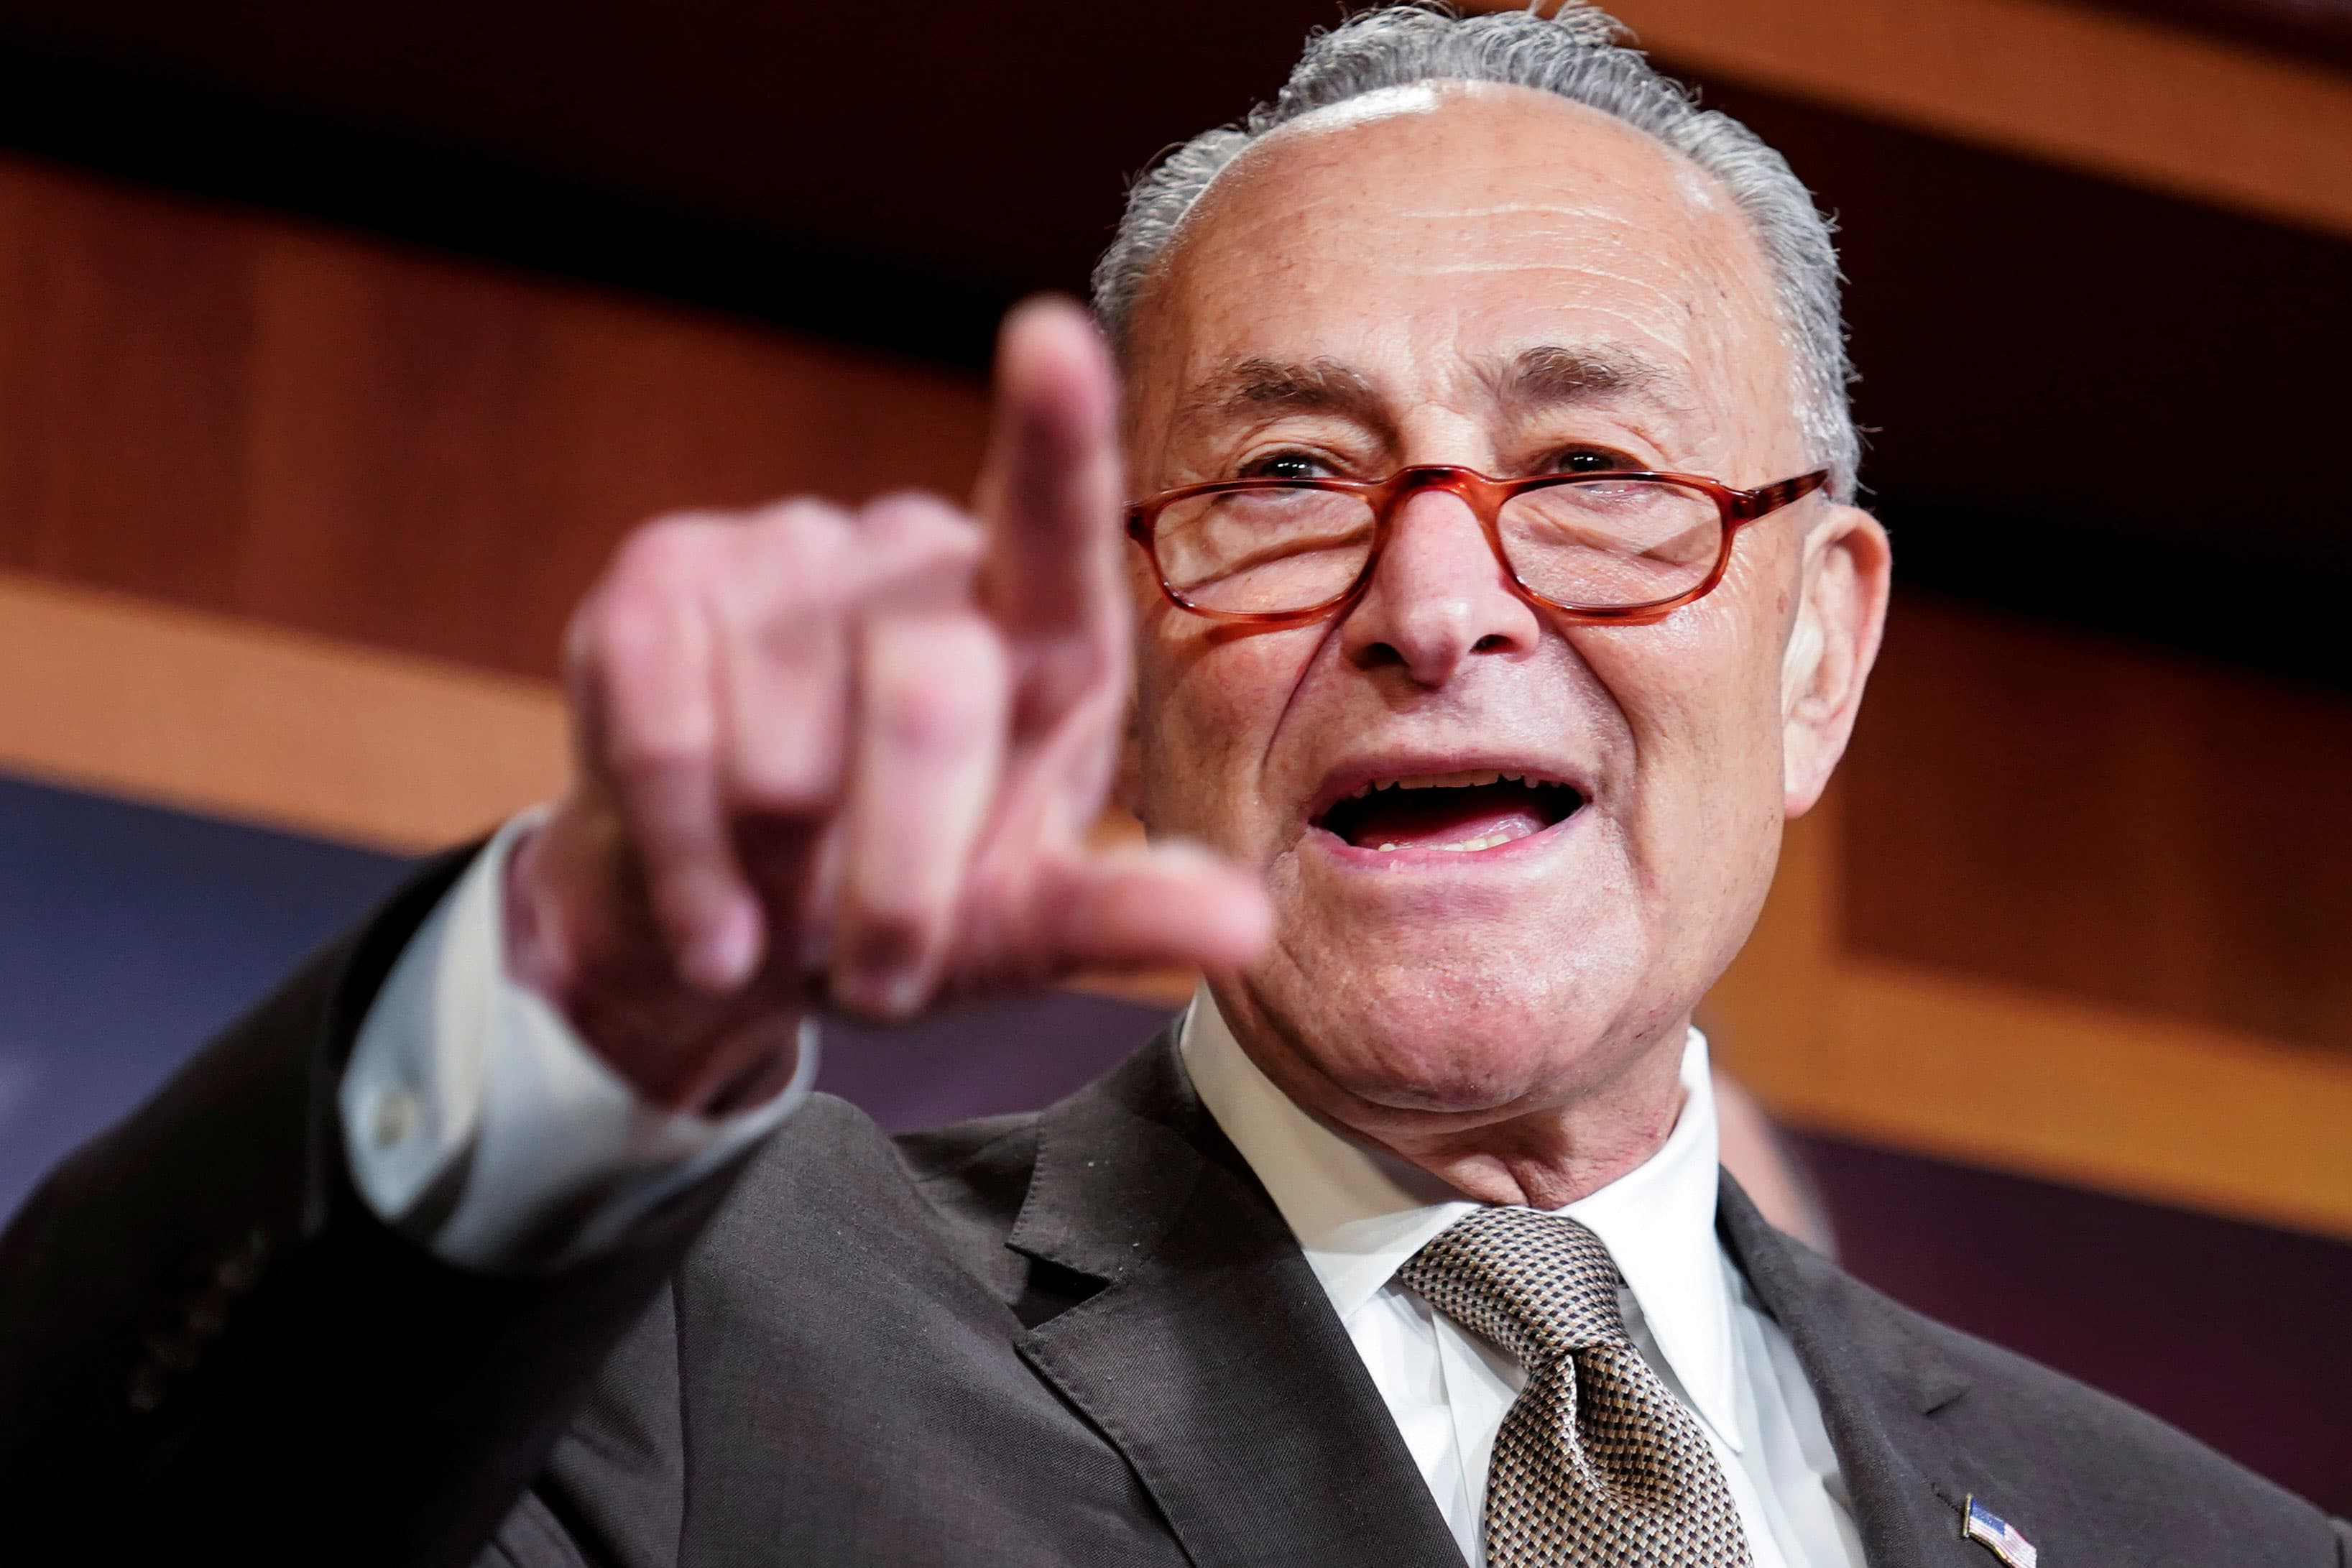 Schumer wants FBI to investigate FaceApp, DNC warns against using it: Here's what you need to know